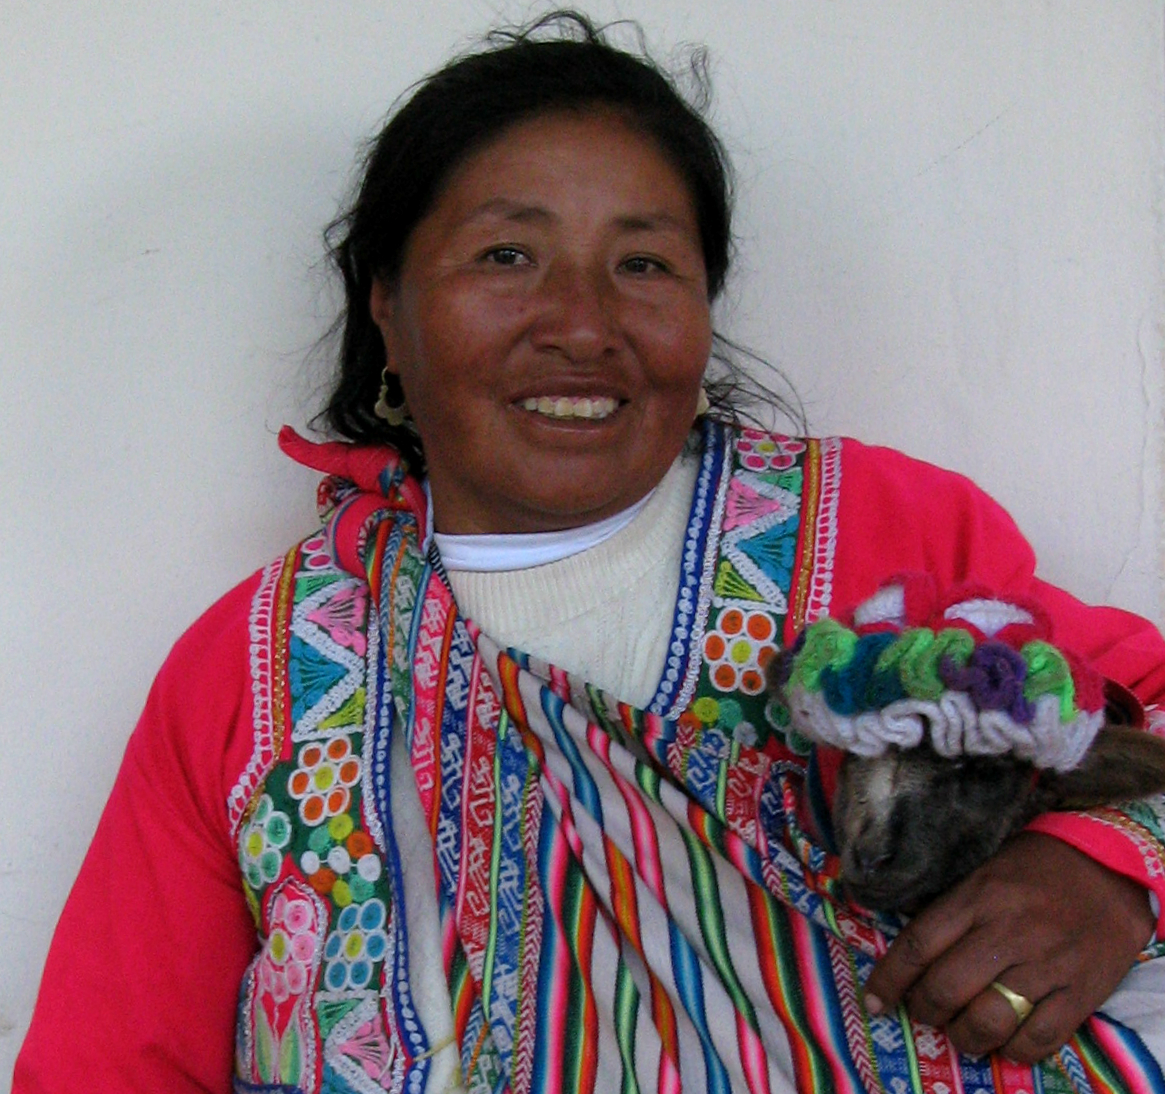 Brightly dressed Cusco woman